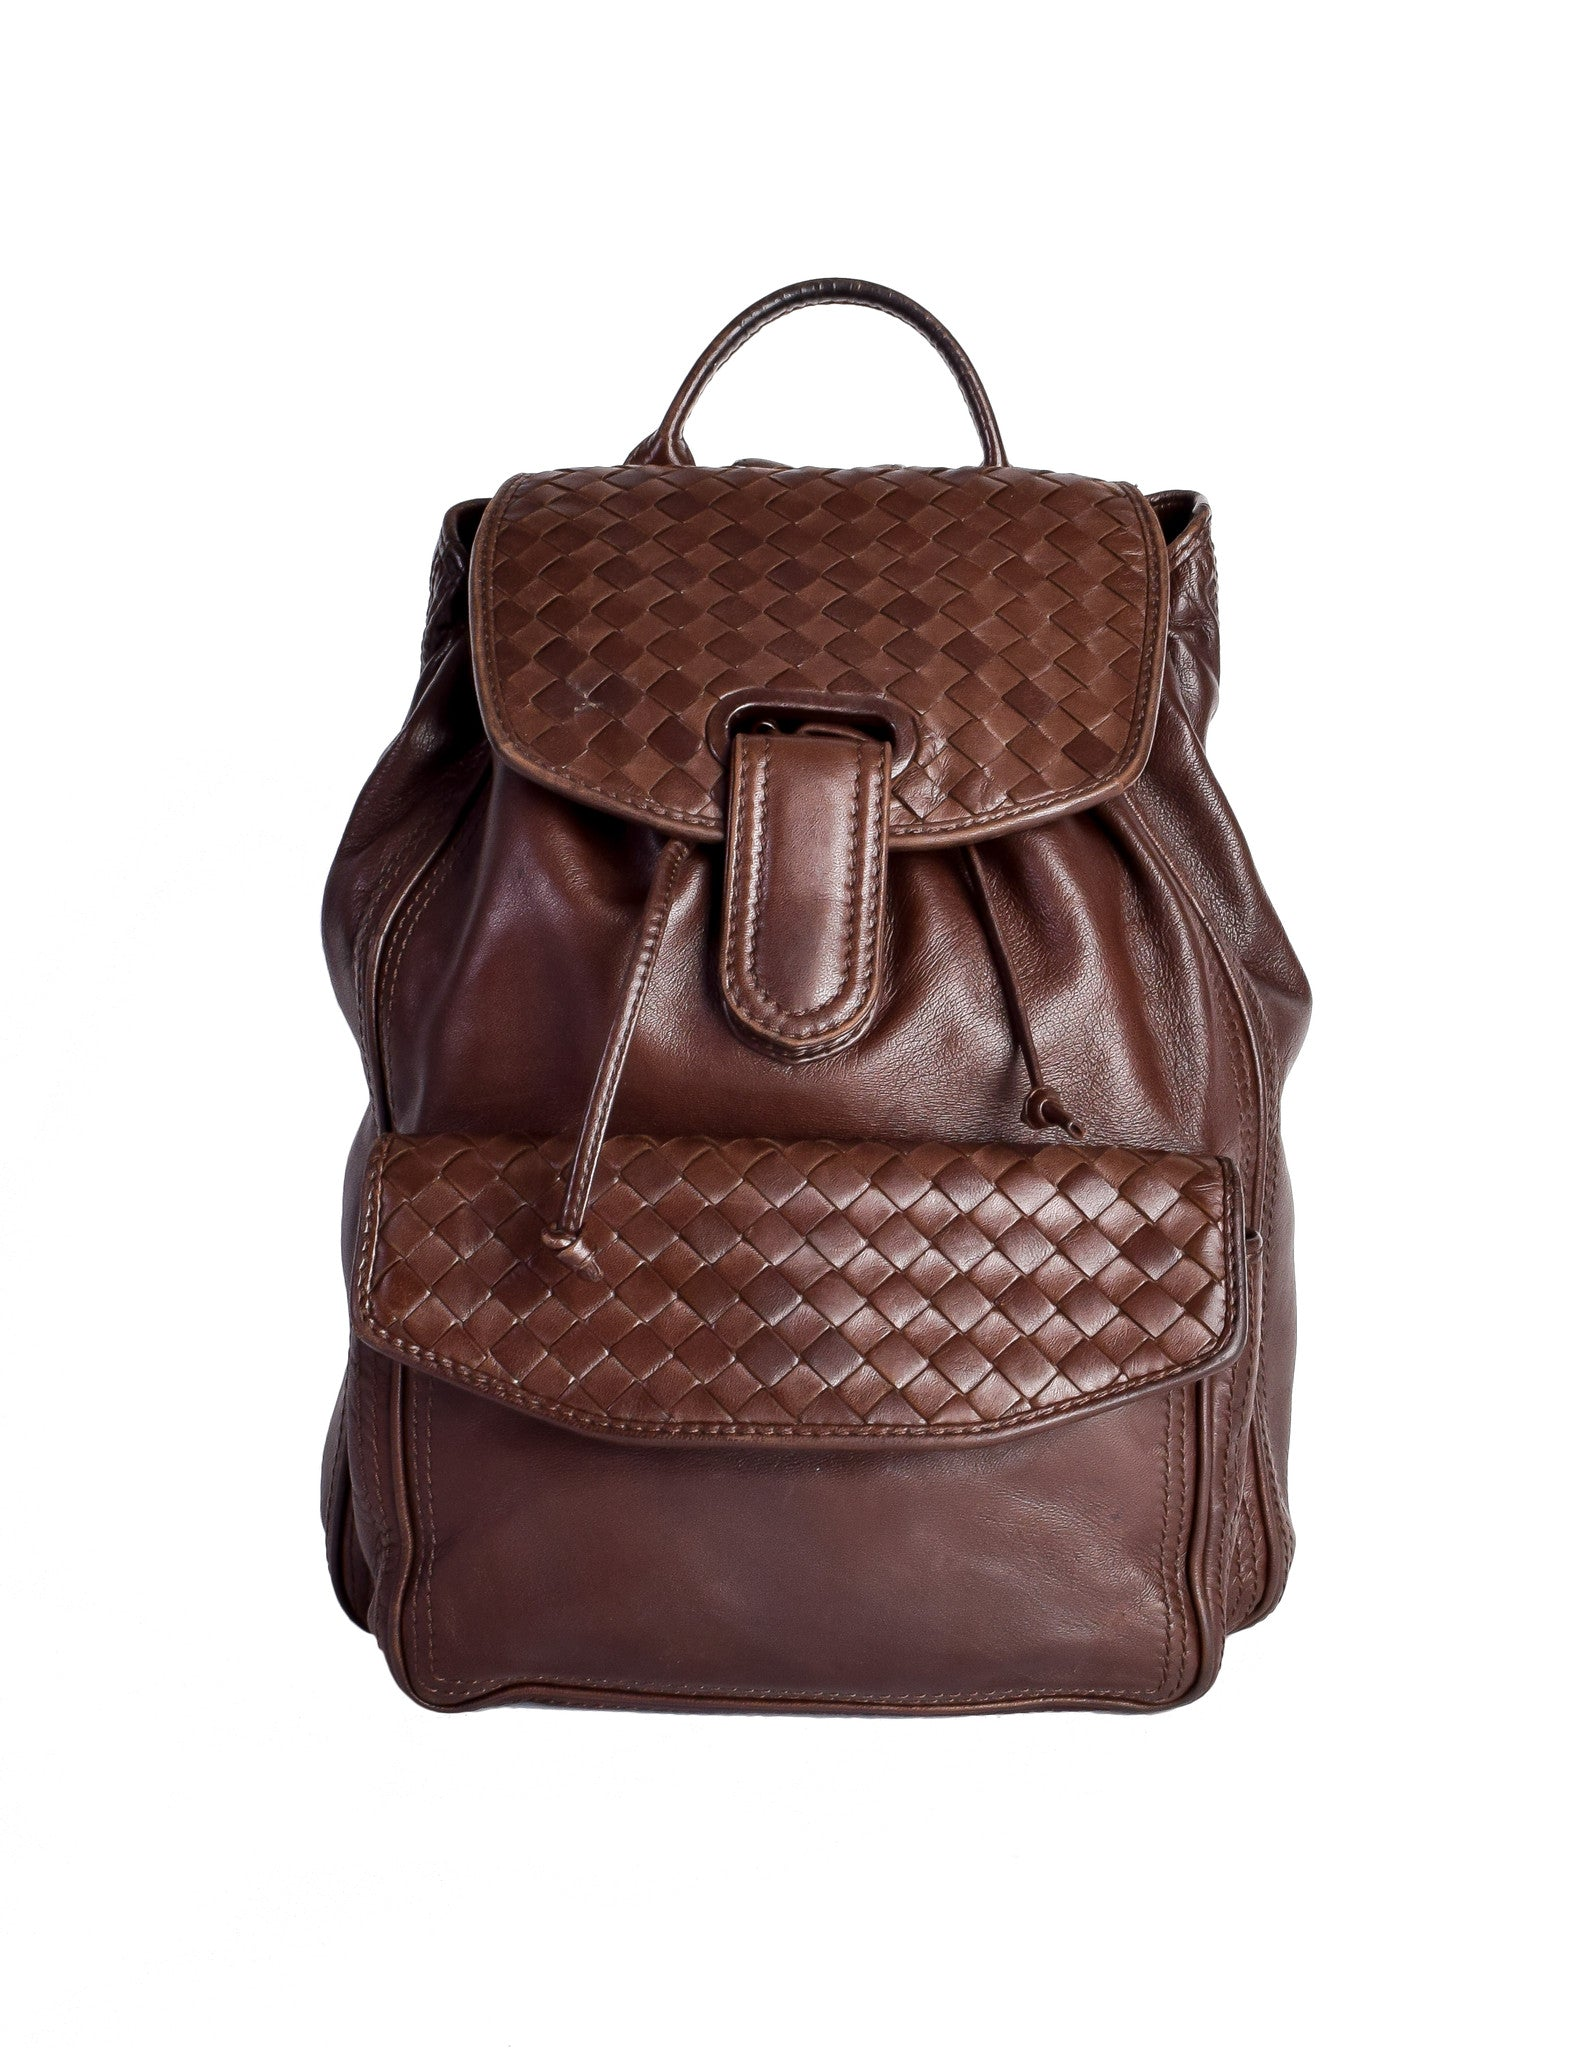 Bottega Veneta Vintage Intrecciato Brown Woven Leather Backpack - Amarcord Vintage Fashion  - 1